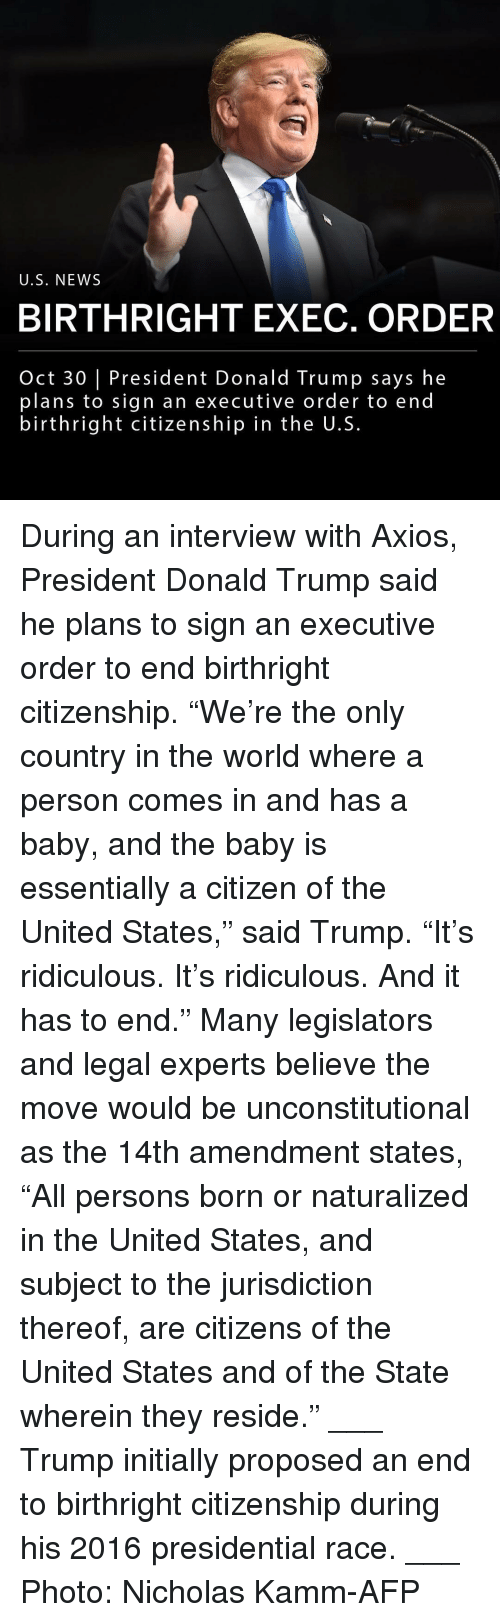 "Donald Trump, Memes, and News: U.S. NEWS  BIRTHRIGHT EXEC. ORDER  Oct 30 President Donald Trump says he  plans to sign an executive order to end  birthright citizenship in the U.S. During an interview with Axios, President Donald Trump said he plans to sign an executive order to end birthright citizenship. ""We're the only country in the world where a person comes in and has a baby, and the baby is essentially a citizen of the United States,"" said Trump. ""It's ridiculous. It's ridiculous. And it has to end."" Many legislators and legal experts believe the move would be unconstitutional as the 14th amendment states, ""All persons born or naturalized in the United States, and subject to the jurisdiction thereof, are citizens of the United States and of the State wherein they reside."" ___ Trump initially proposed an end to birthright citizenship during his 2016 presidential race. ___ Photo: Nicholas Kamm-AFP"